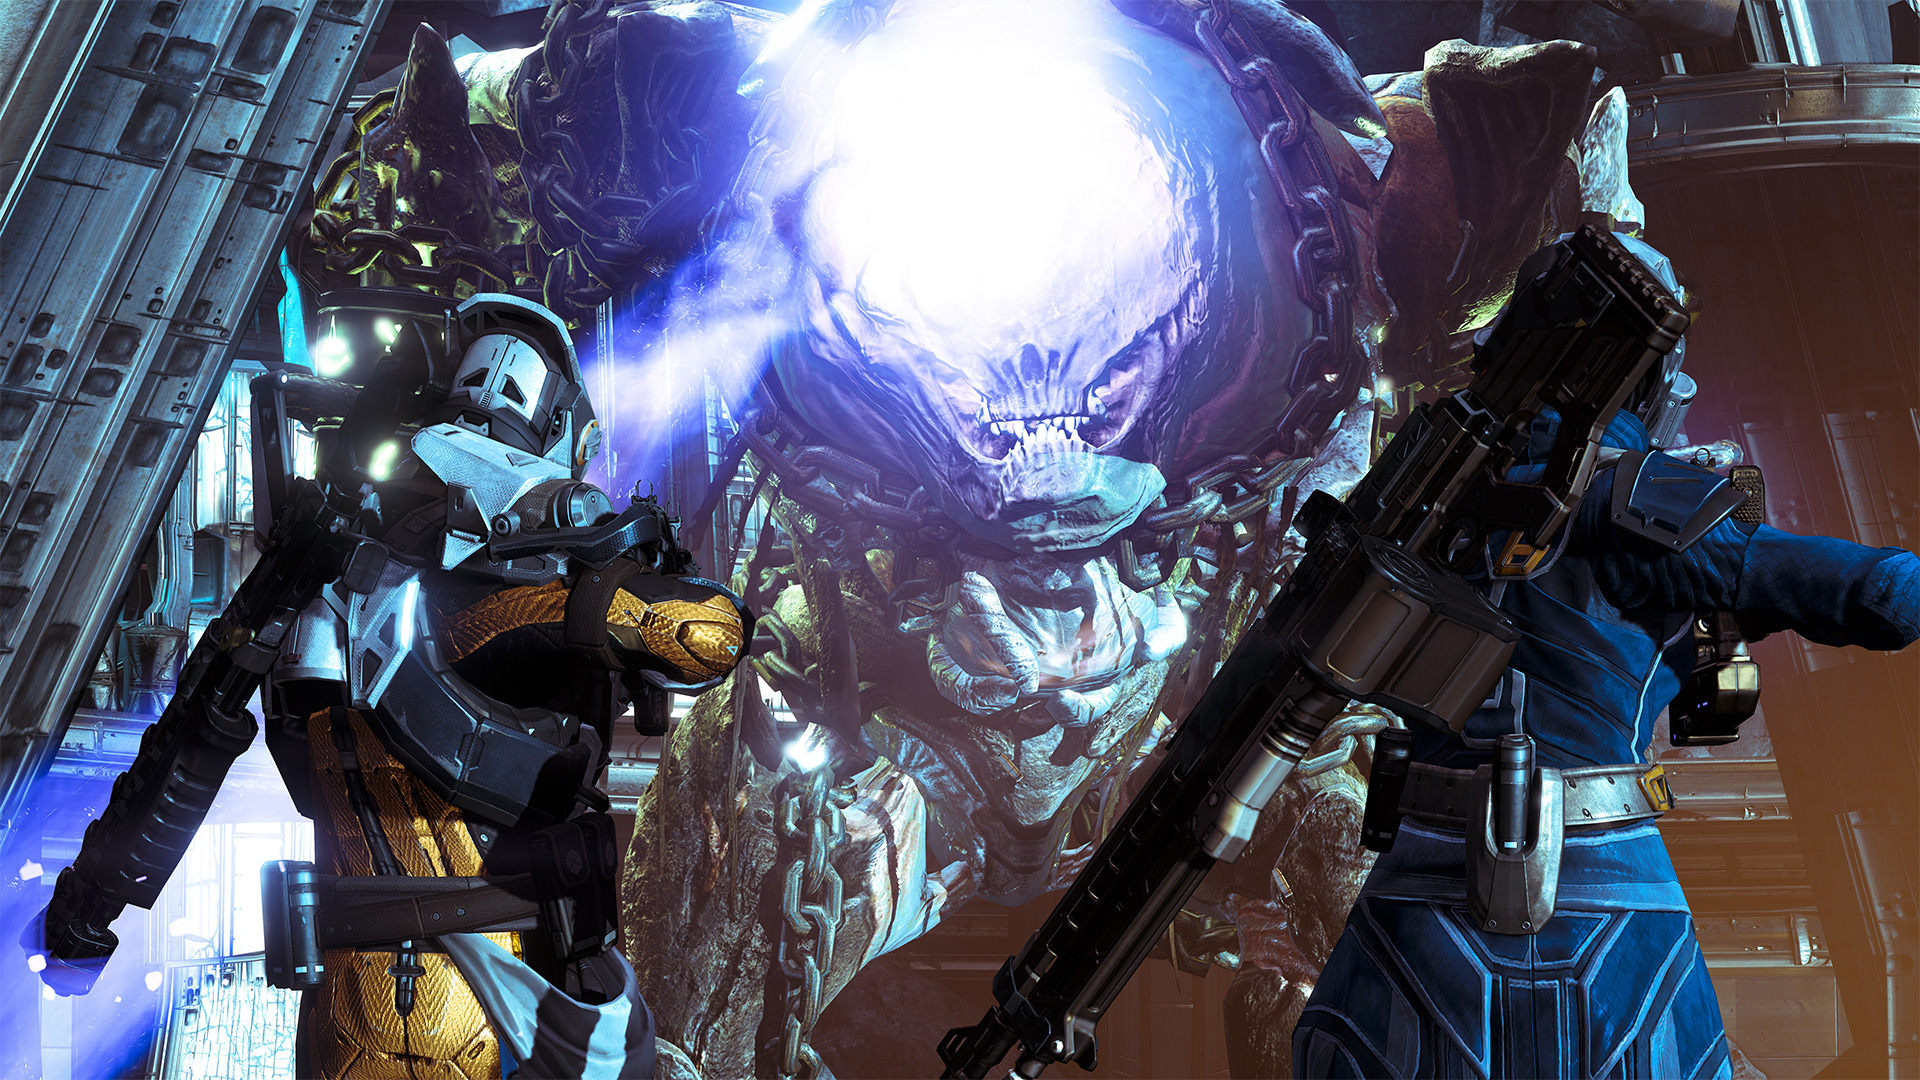 Destiny's weekly heroic strikes will feature matchmaking after the next patch